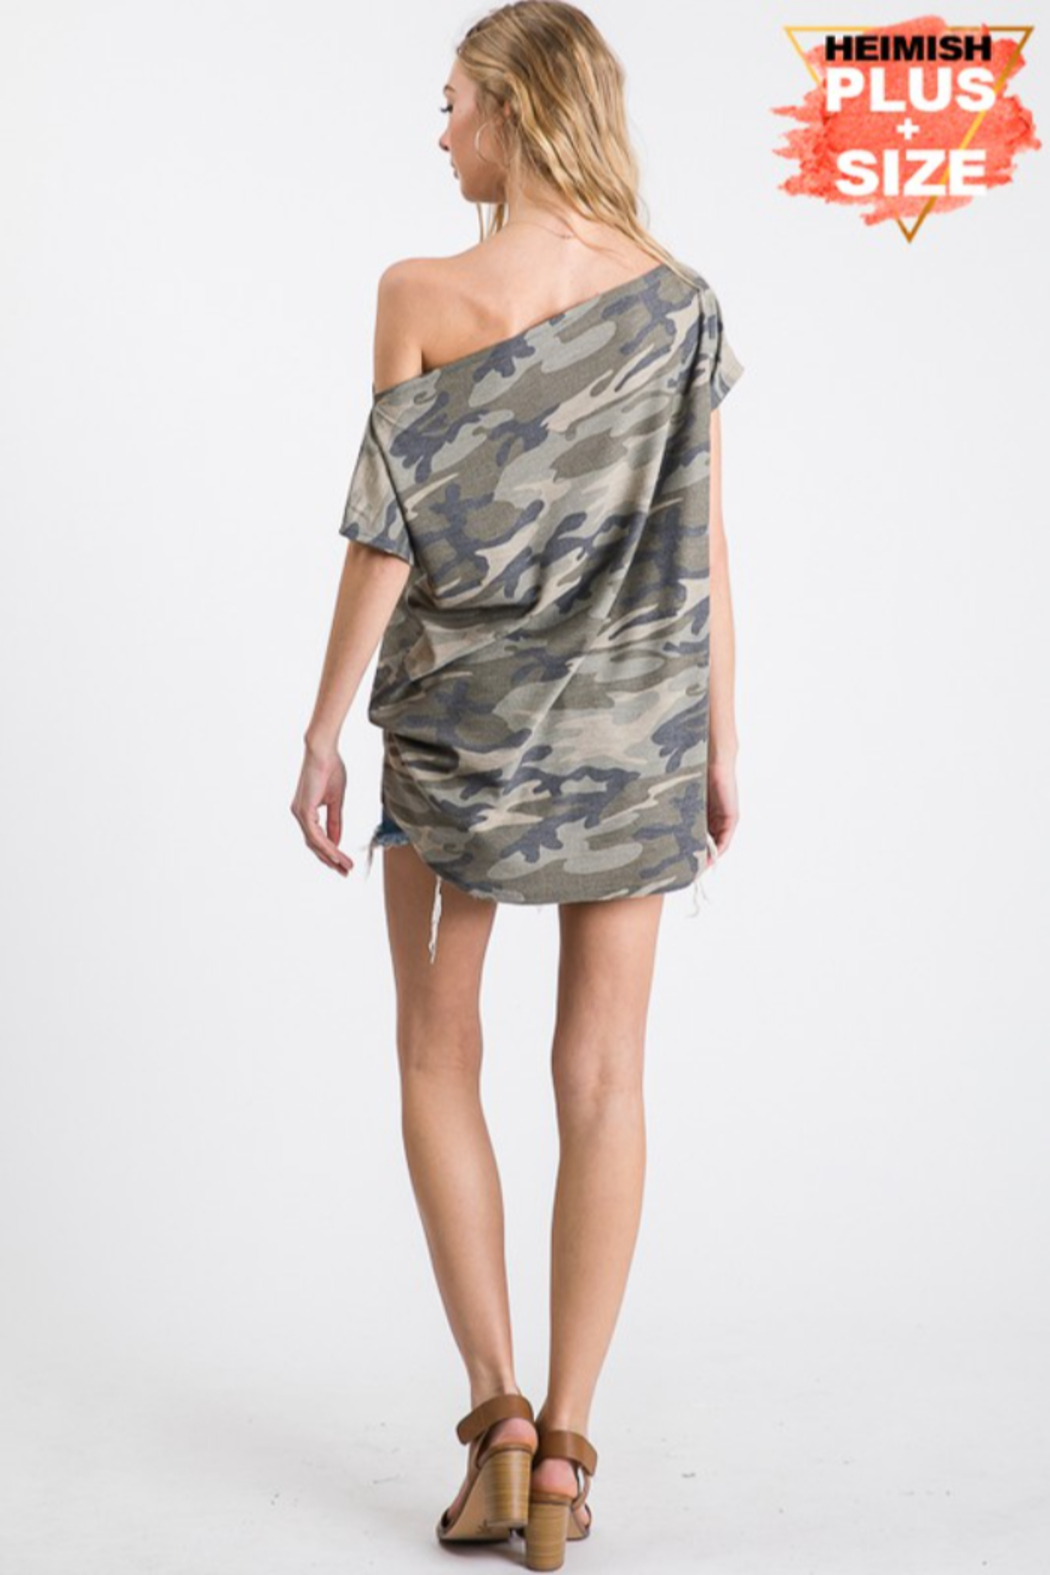 Heimish Camo One Shoulder Top - Plus Size - Side Cropped Image